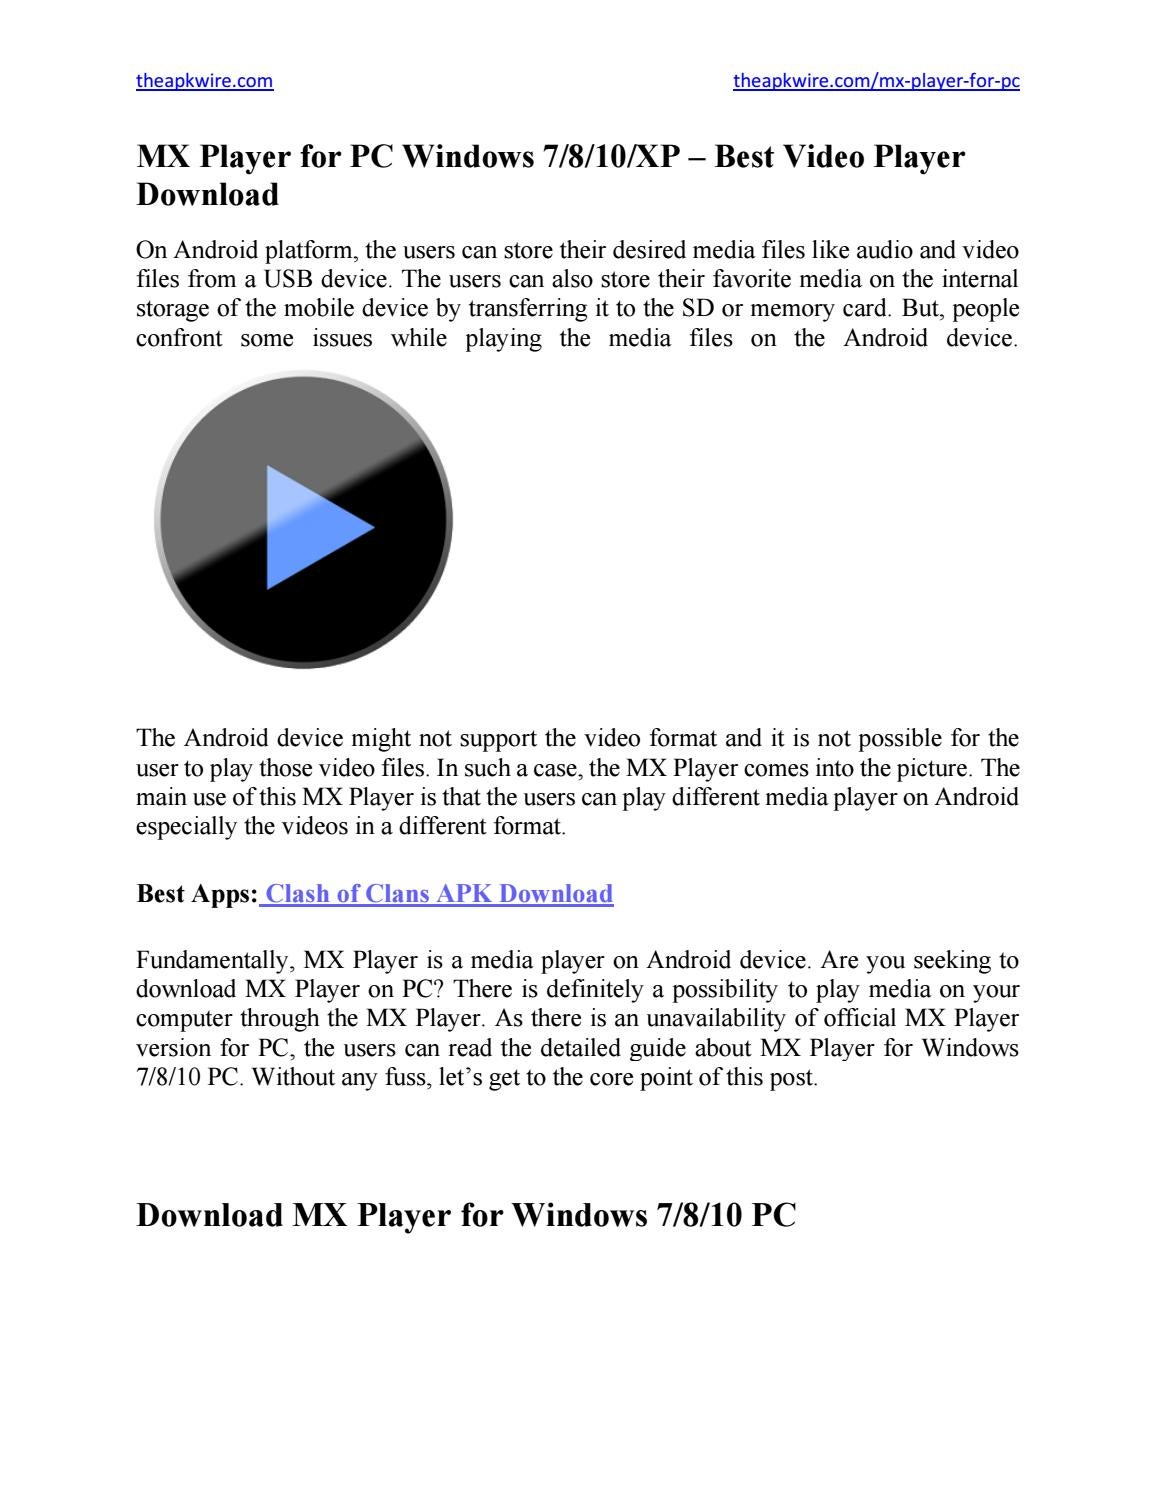 Top 3 free hd video players for windows 7 free download.